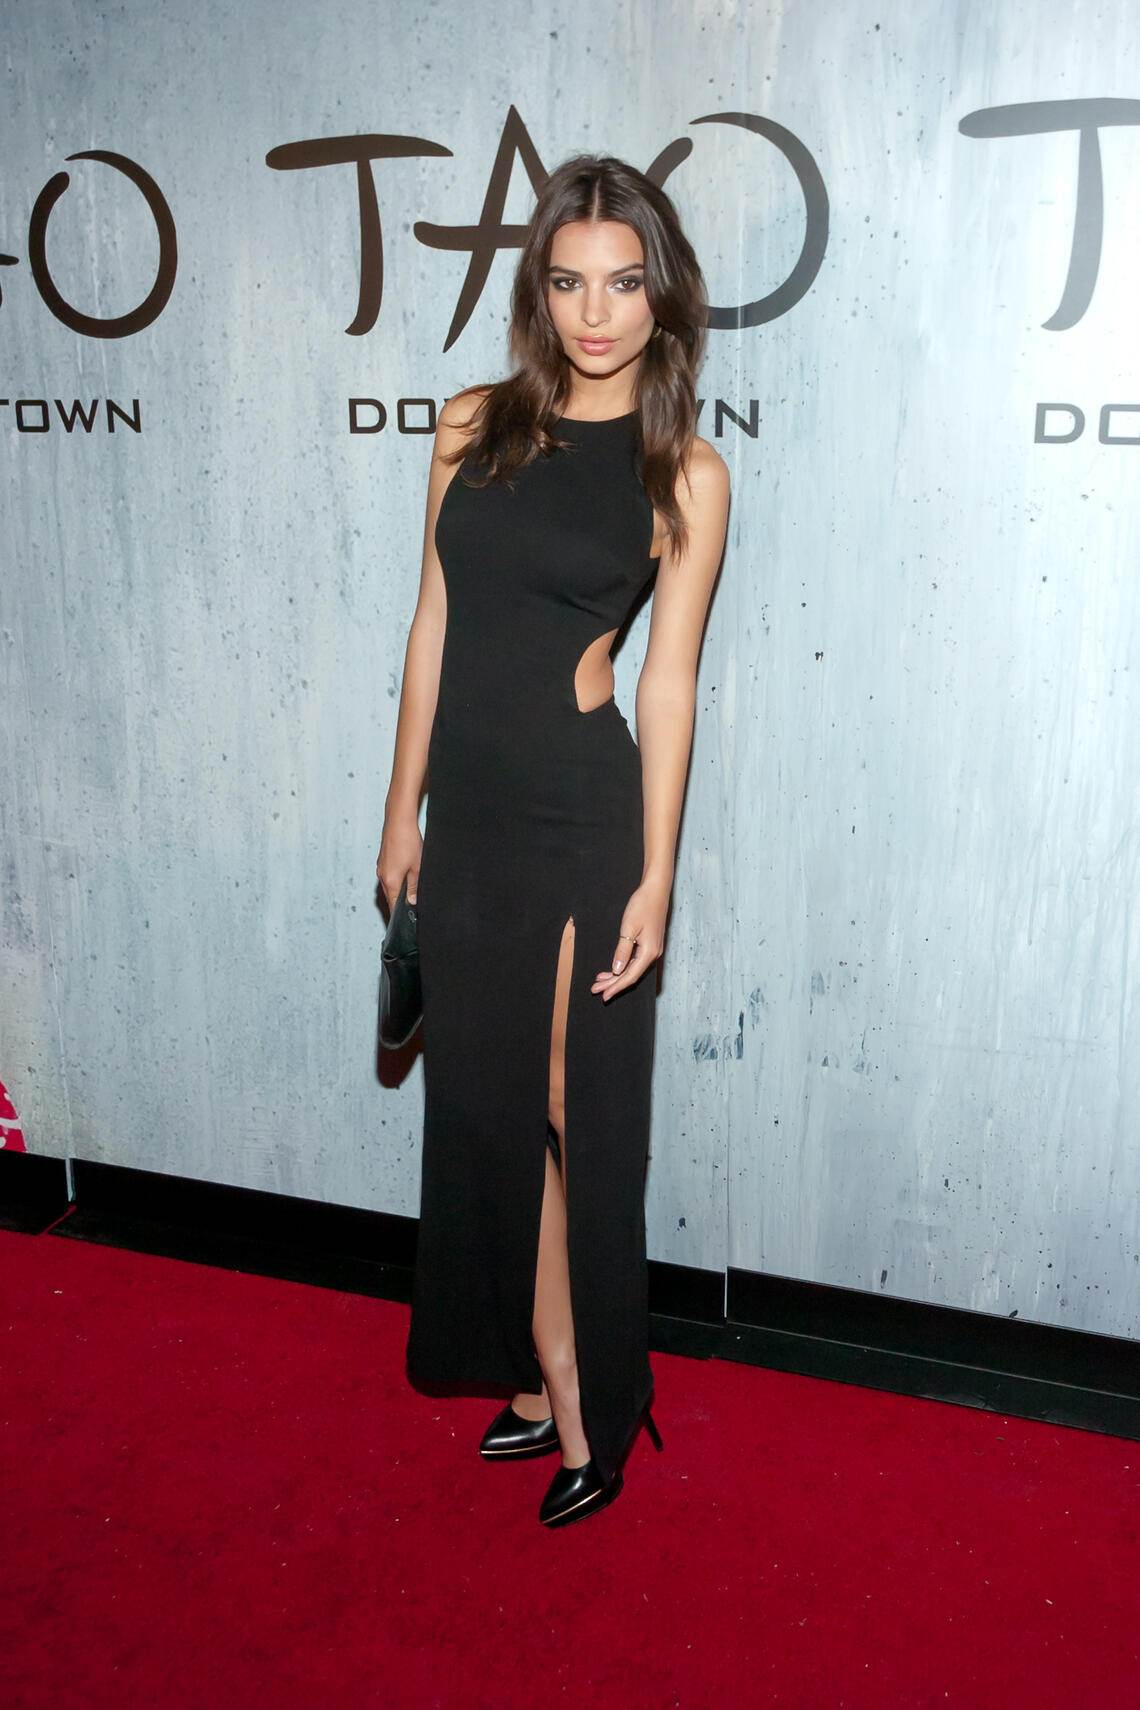 NEW YORK, NY - SEPTEMBER 28:  Emily Ratajkowski attends the grand opening of TAO Downtown on September 28, 2013 in New York City.  (Photo by Steven A Henry/WireImage)